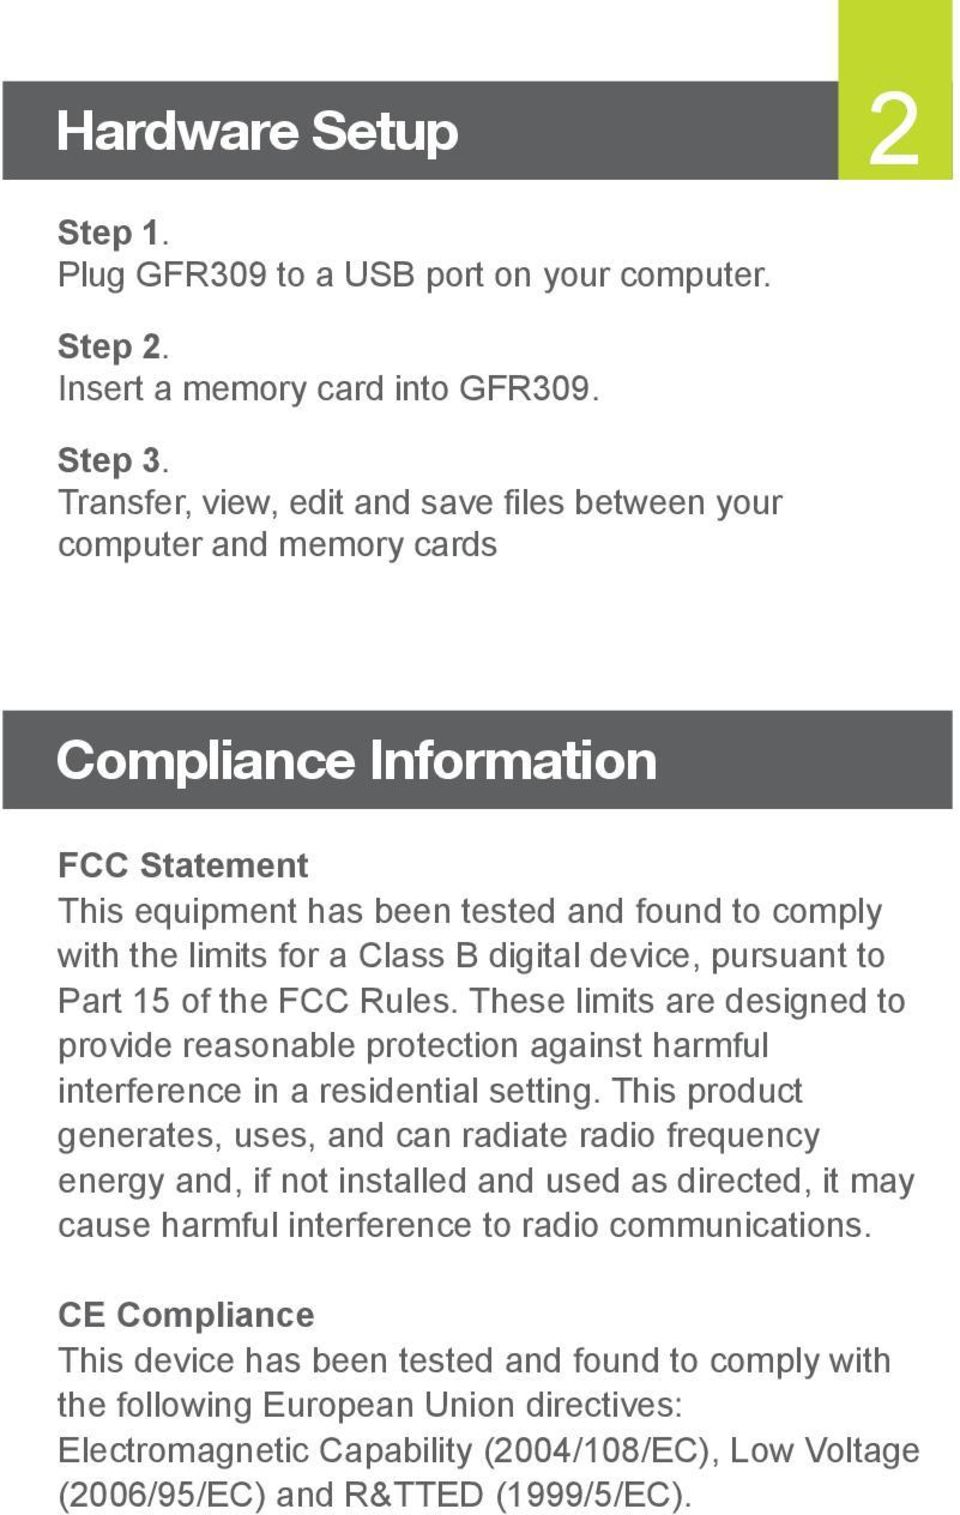 digital device, pursuant to Part 5 of the FCC Rules. These limits are designed to provide reasonable protection against harmful interference in a residential setting.